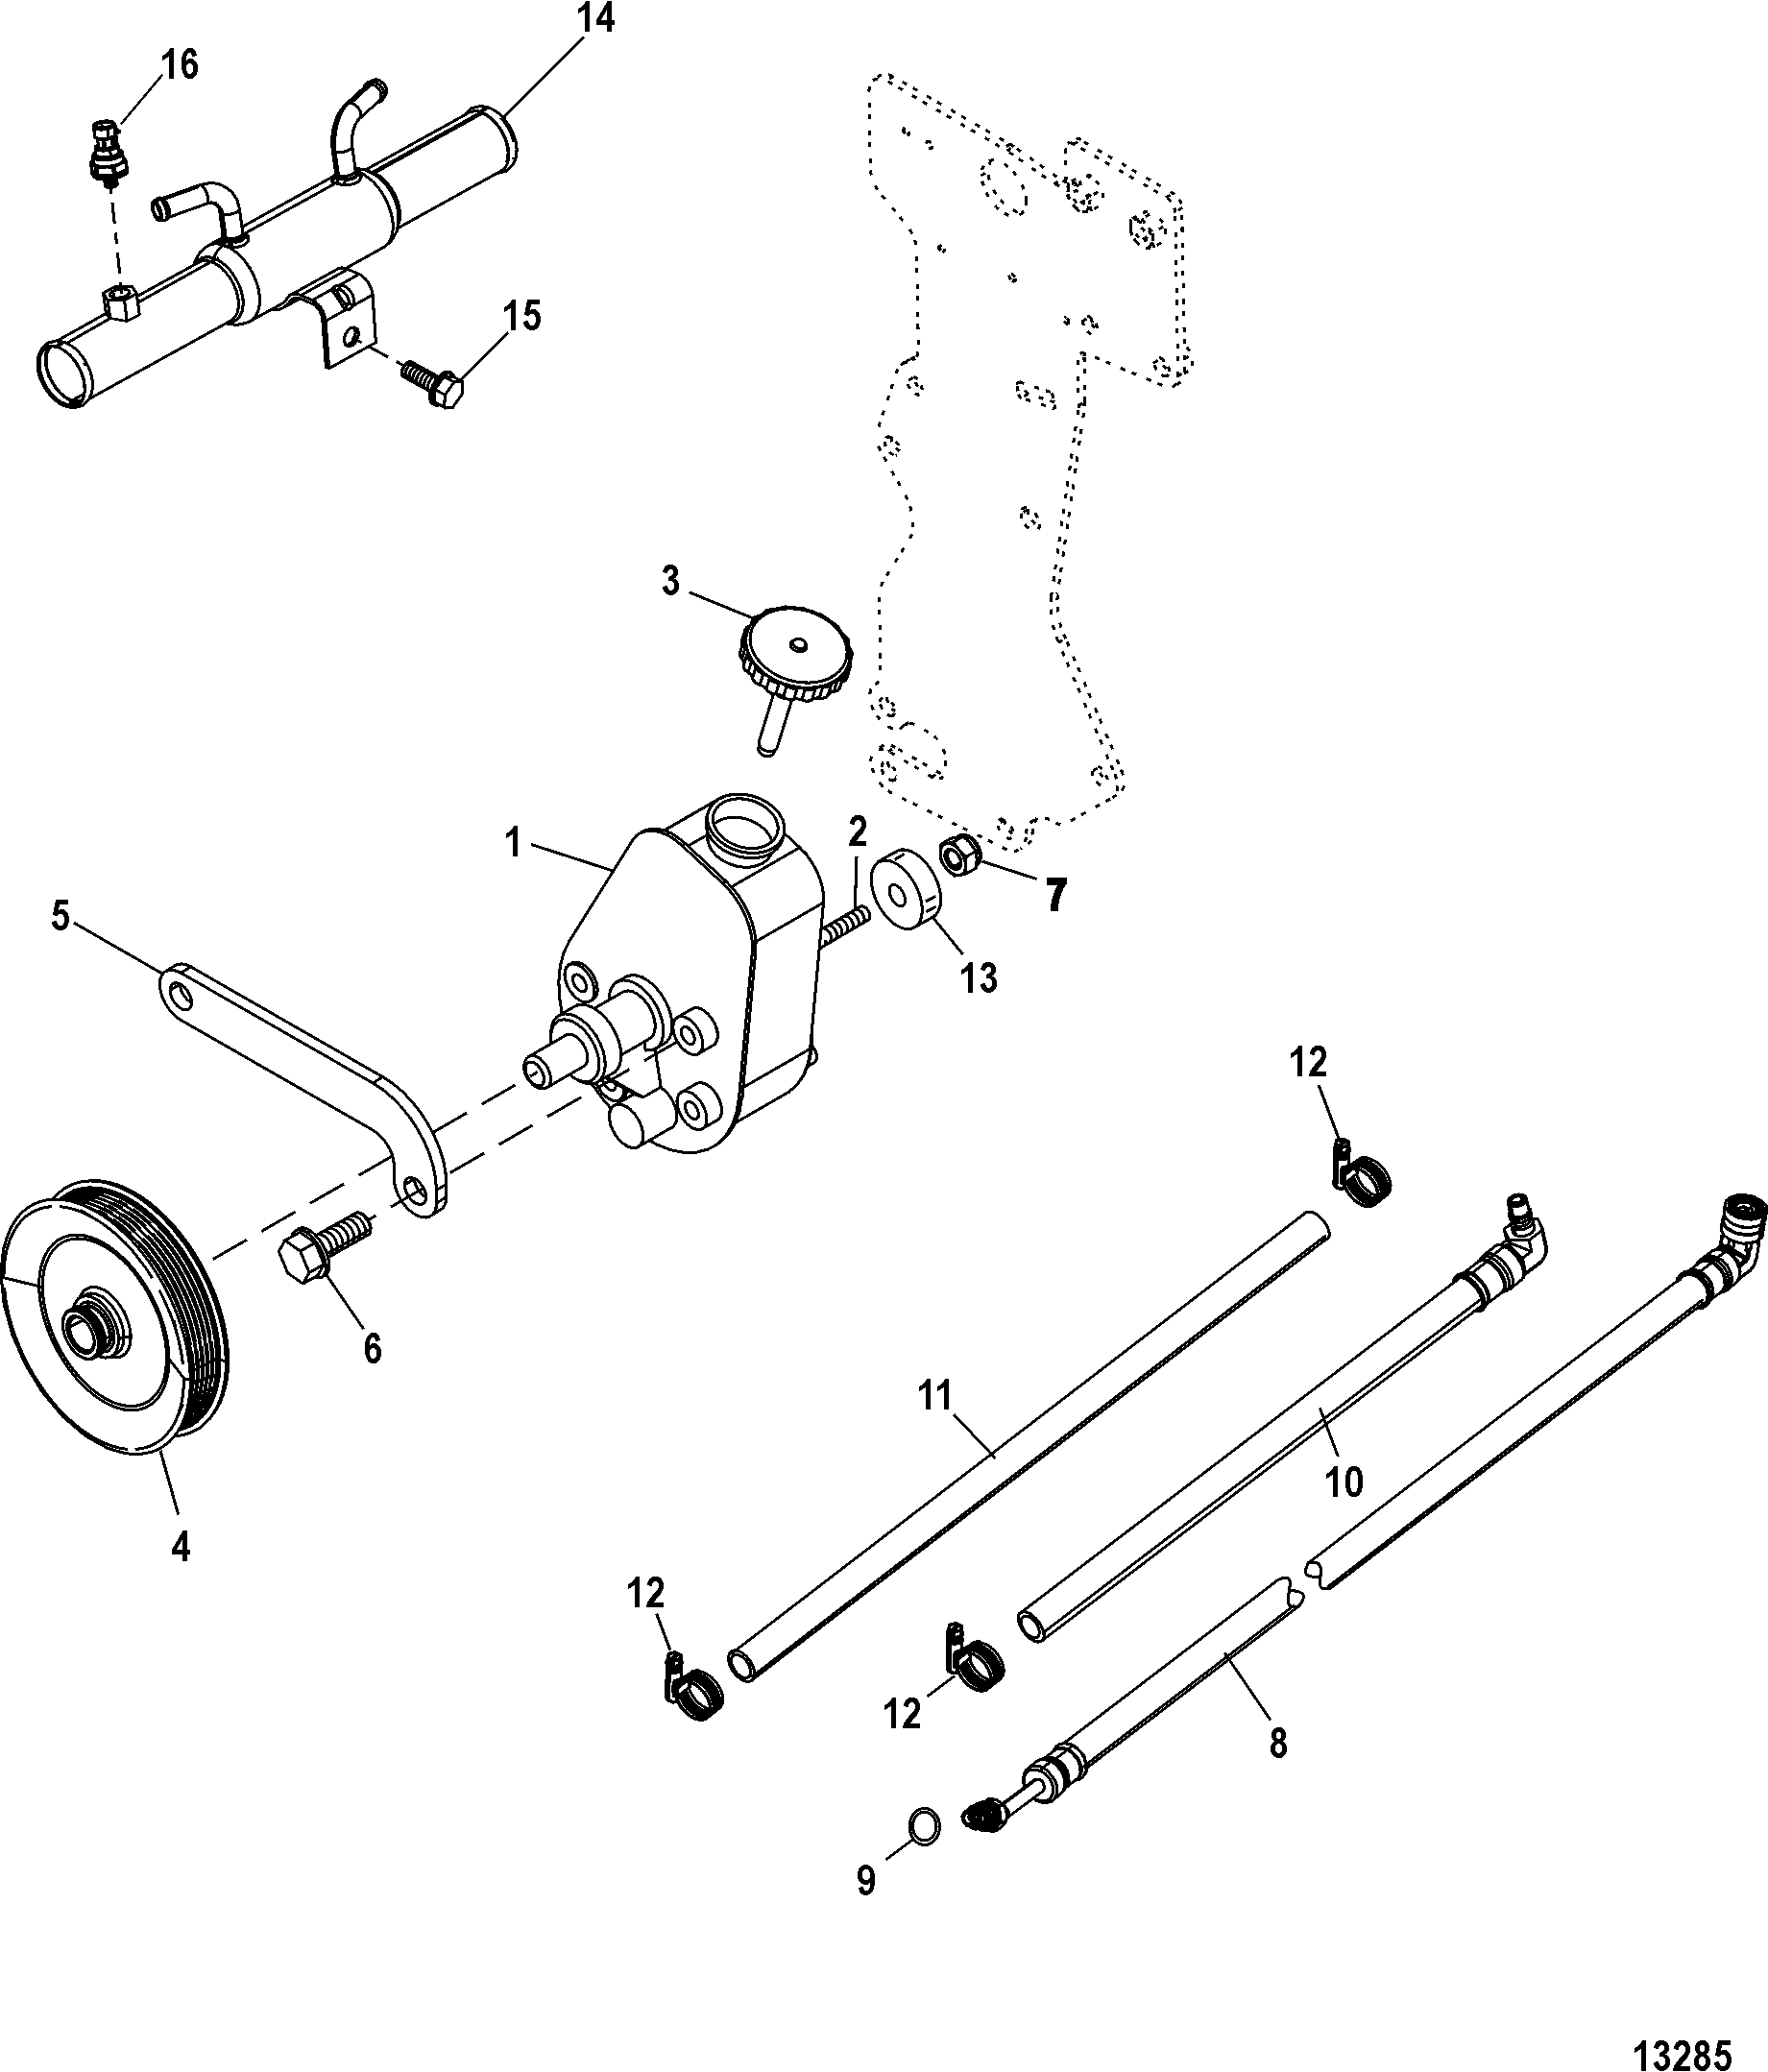 RepairGuideContent furthermore Front Axle together with 1328442 1985 F150 Horn Relay further 12 BASICS Drive Belt Replacement further Gmc Sierra 2007 Fuse Box Diagram. on power steering diagram